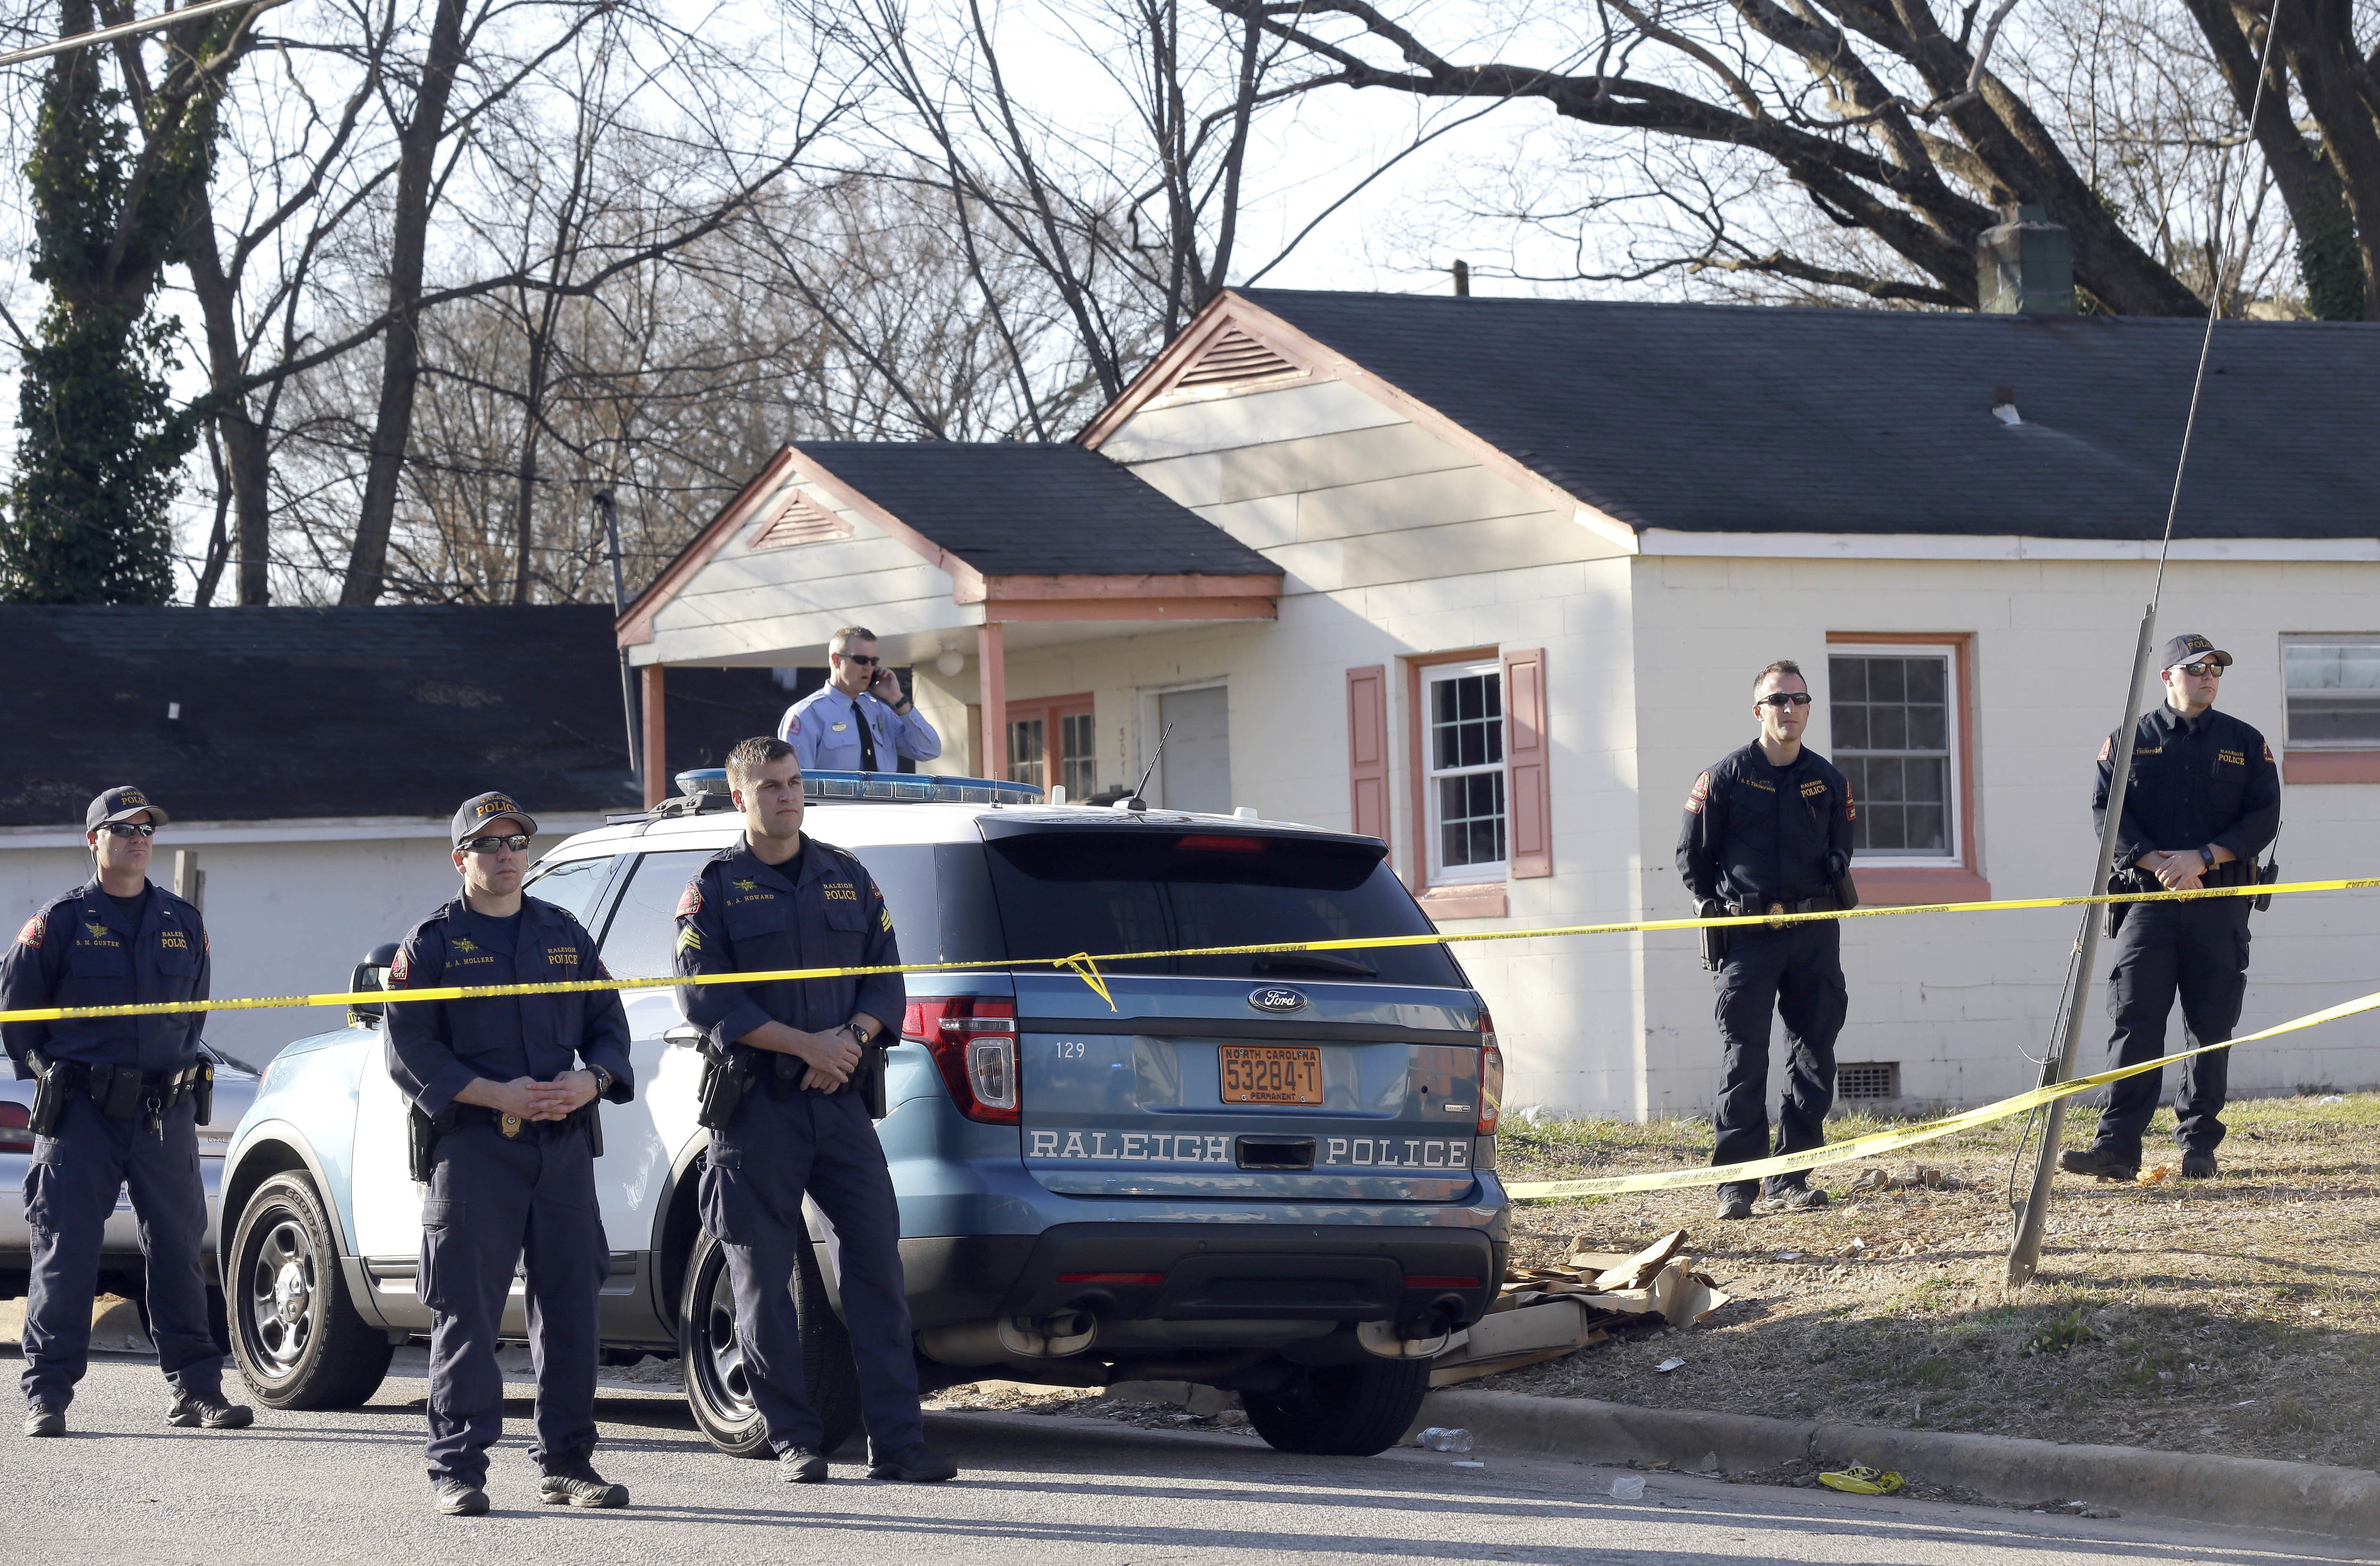 Police gather near the scene of a fatal shooting in Raleigh, NC on Feb. 29, 2016.